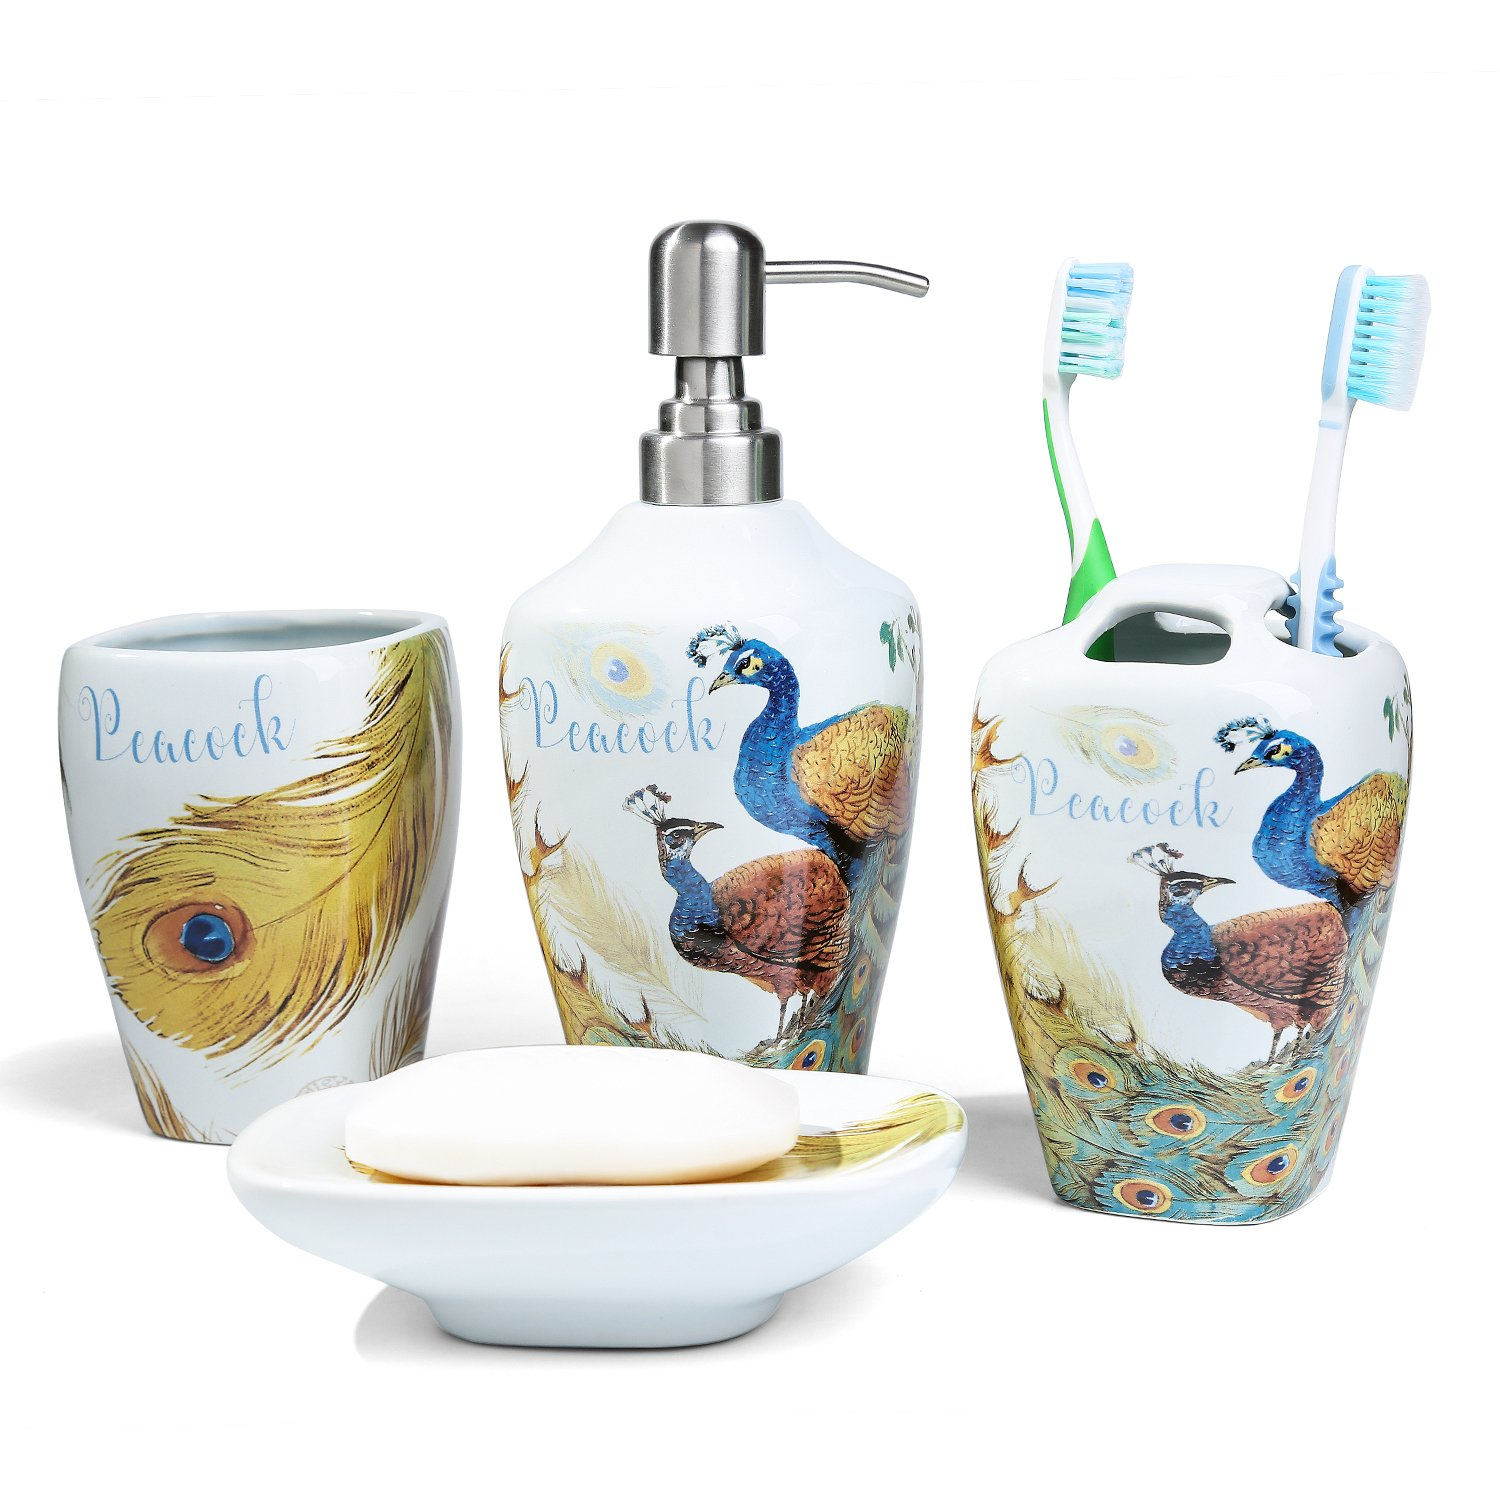 FORLONG FL3011 Ceramic Peacock Bathroom Accessories Set of 4:1 Gargle Cups,1 Toothbrush Holders,1 Soap Dishes,1 Soap Dispenser